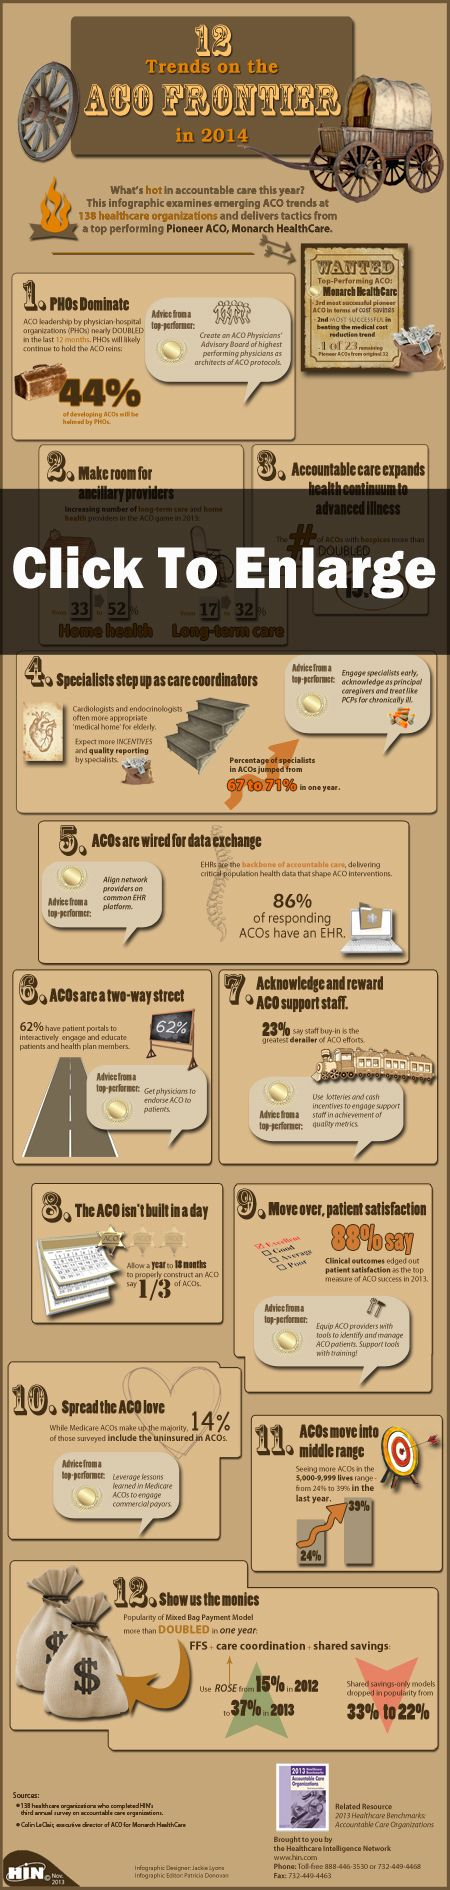 12 Trends On The Aco Frontier In 2014 Infographic Health Care Insurance Care Coordination Healthcare Education